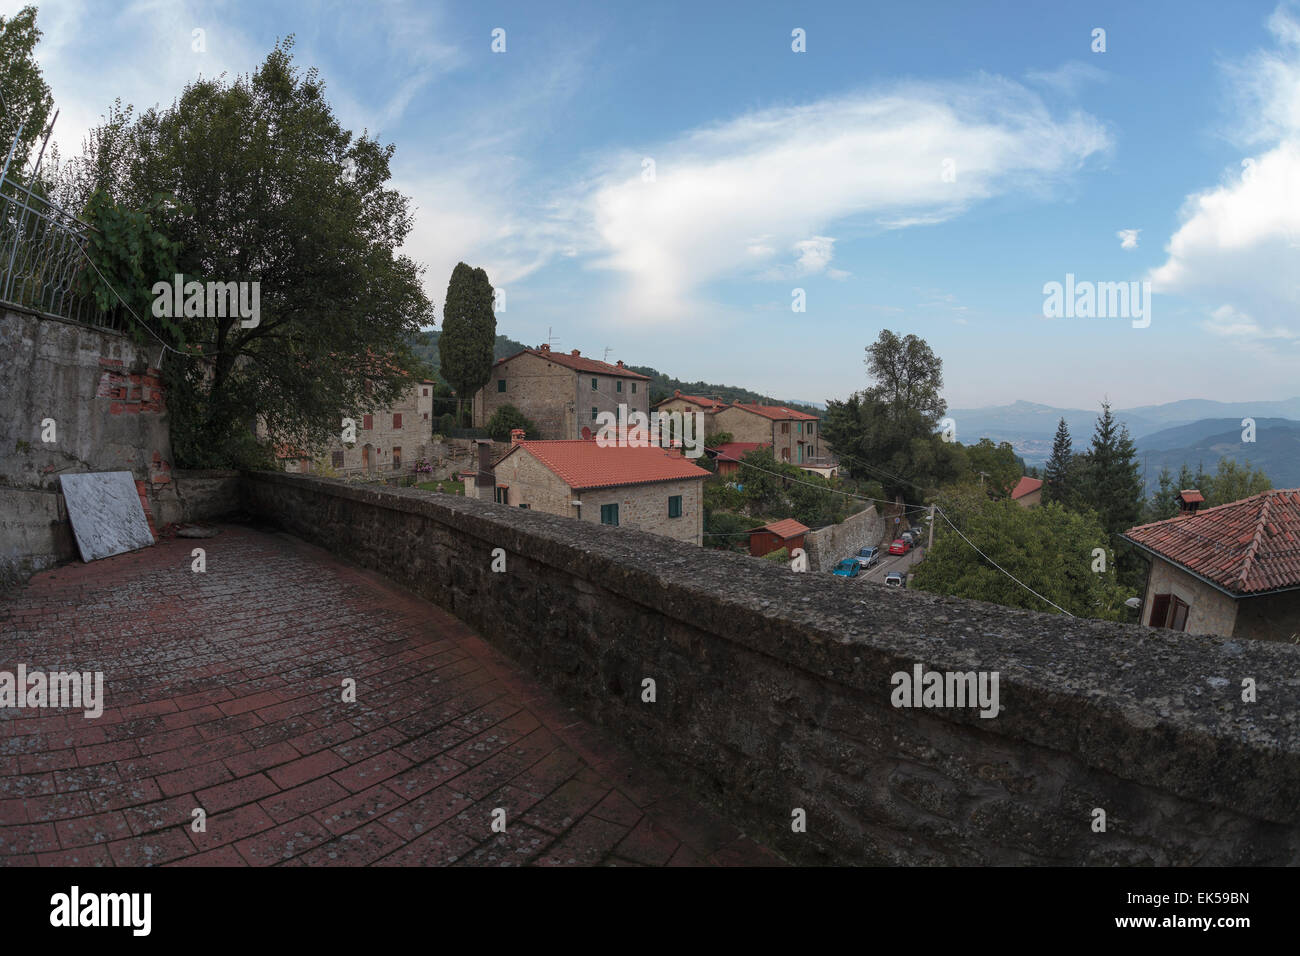 viewpoint of village, Quota di Poppi, Casentino, Tuscany - Stock Image